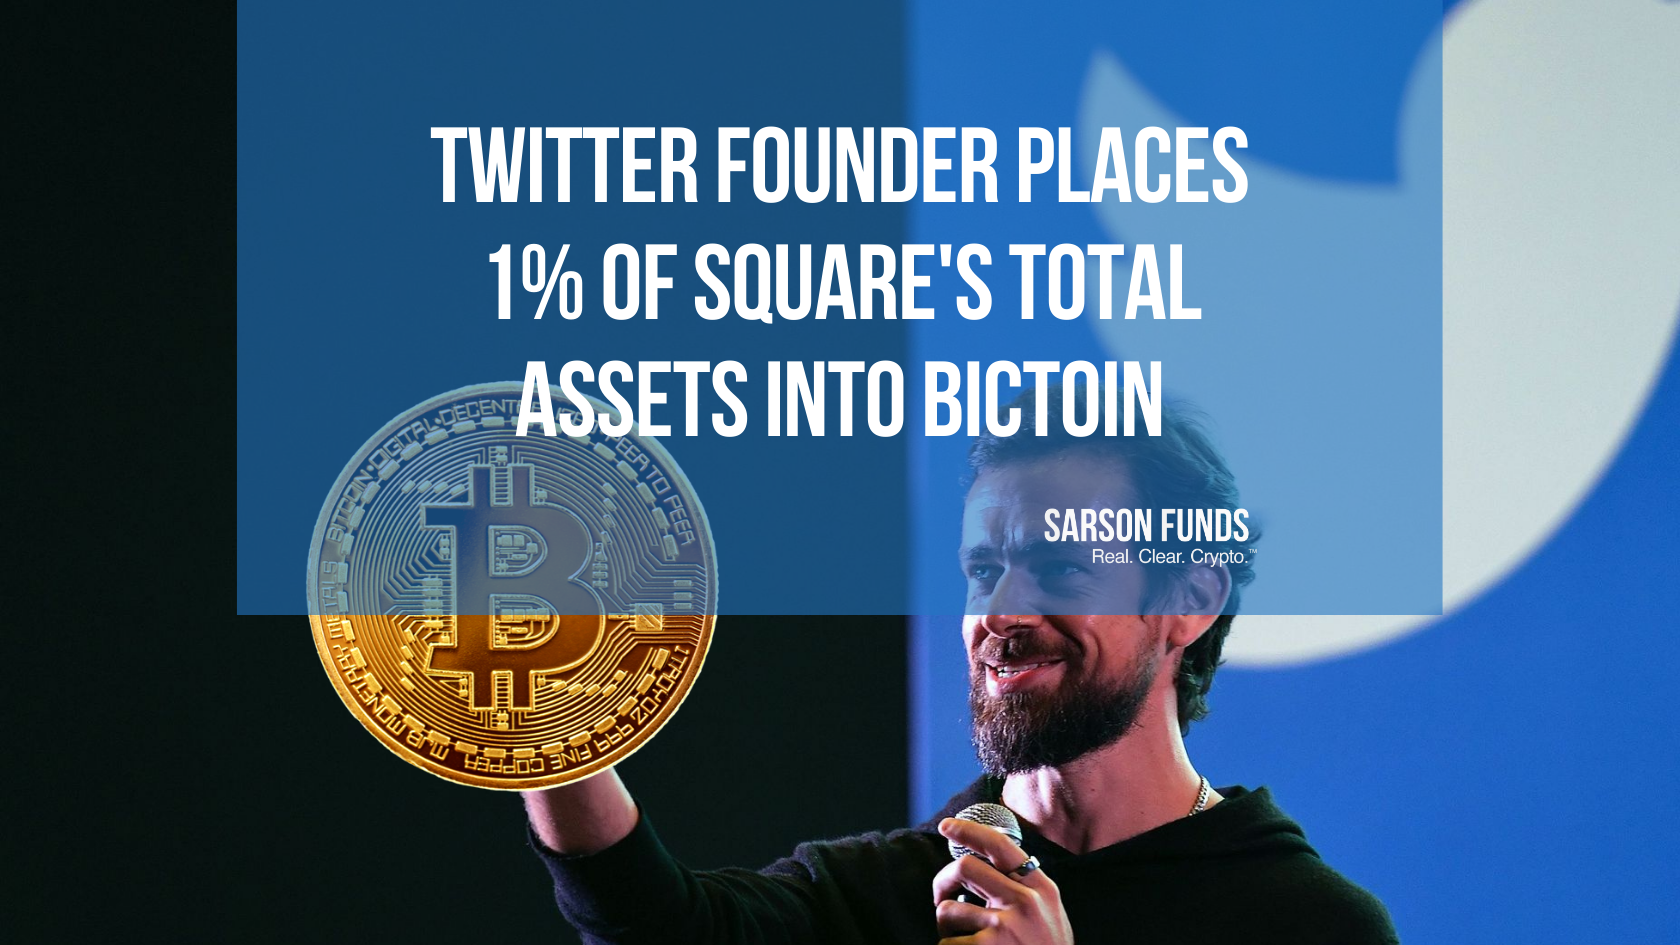 Jack Dorsey Places 50 Million of Square's Assets into Bitcoin